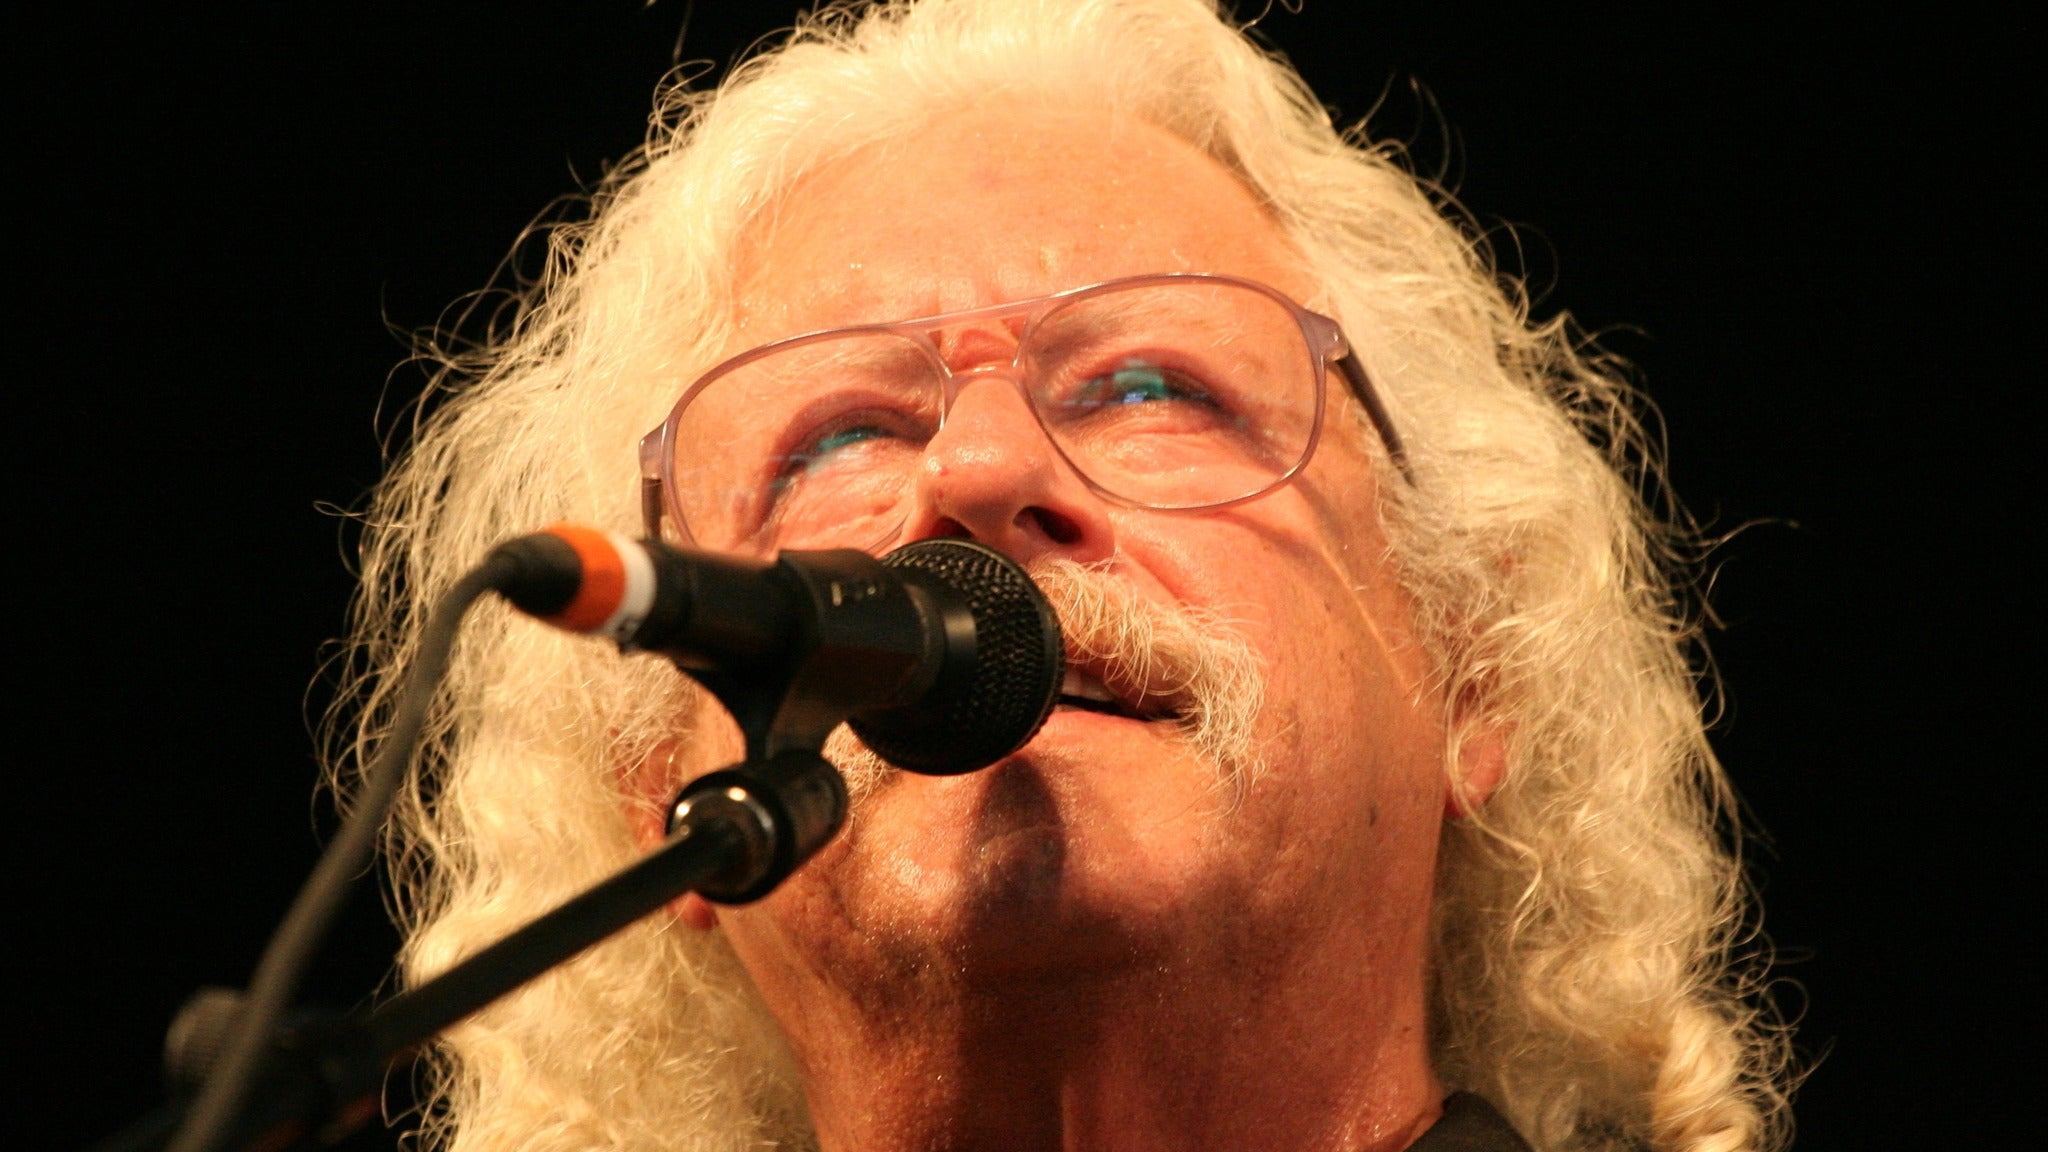 Arlo Guthrie at The Coach House - San Juan Capistrano, CA 92675